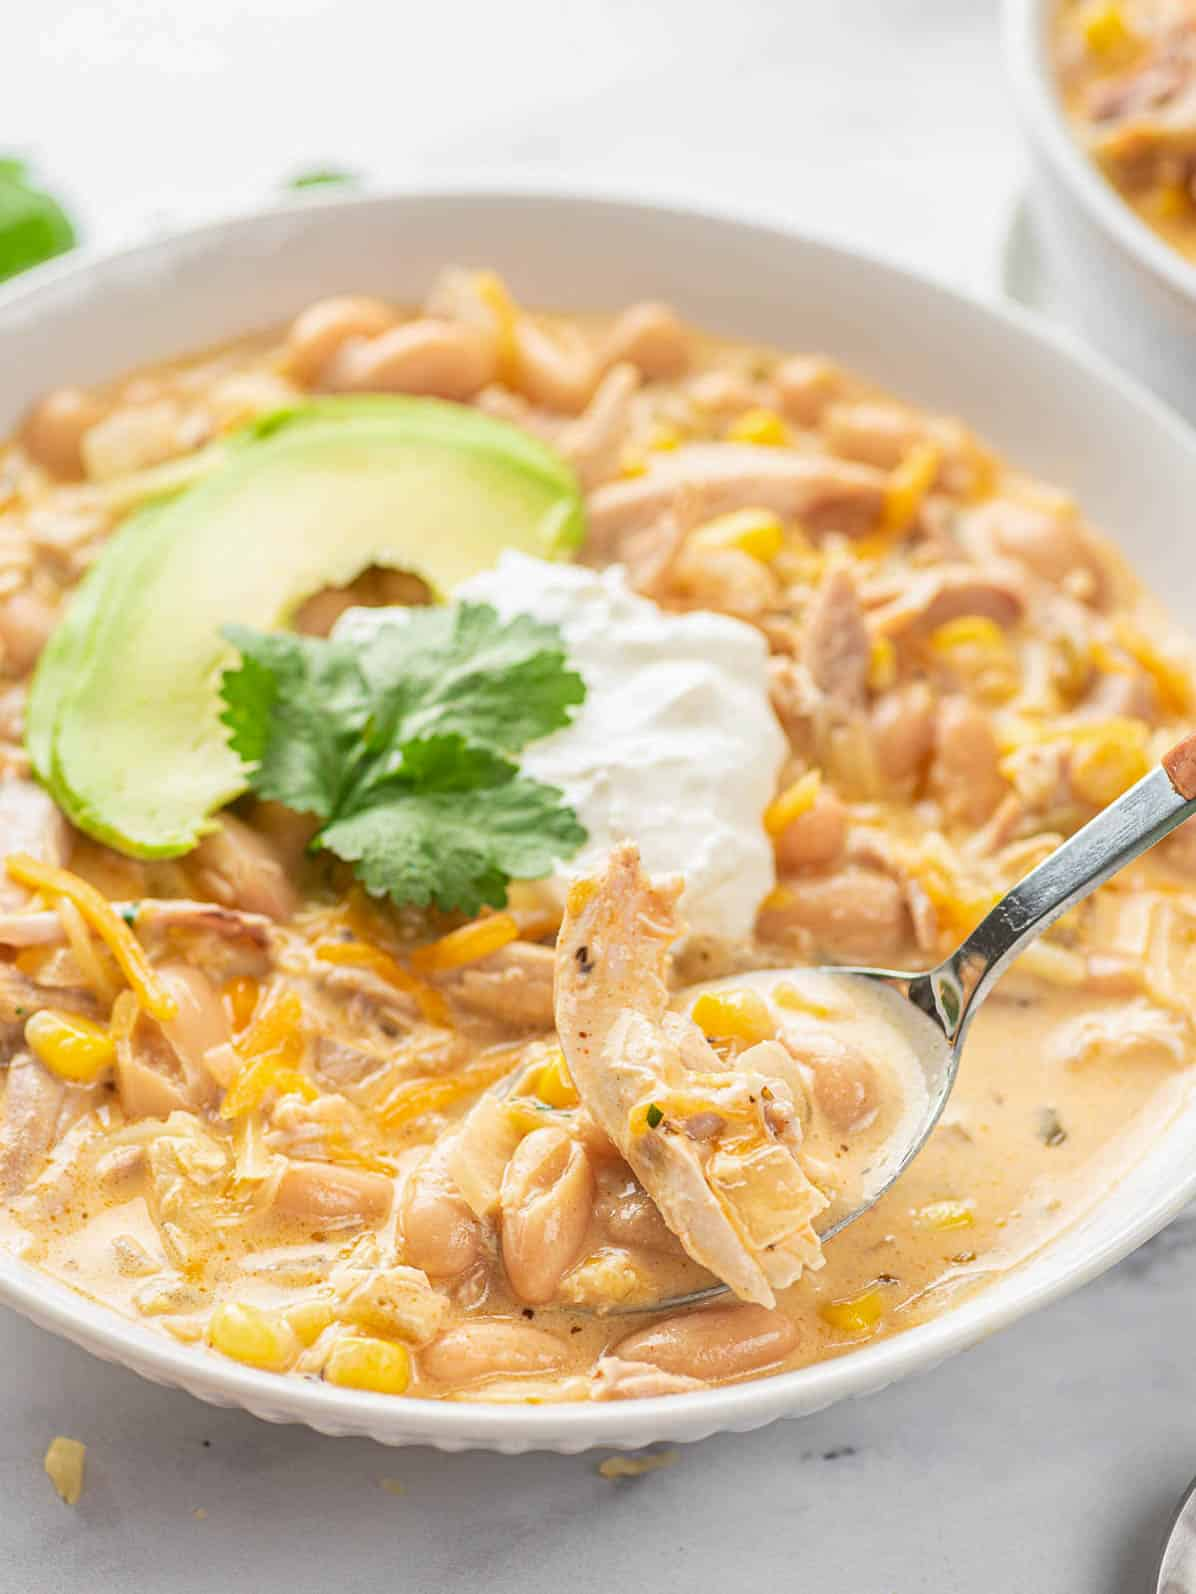 spoon scooping white chicken chili from plate